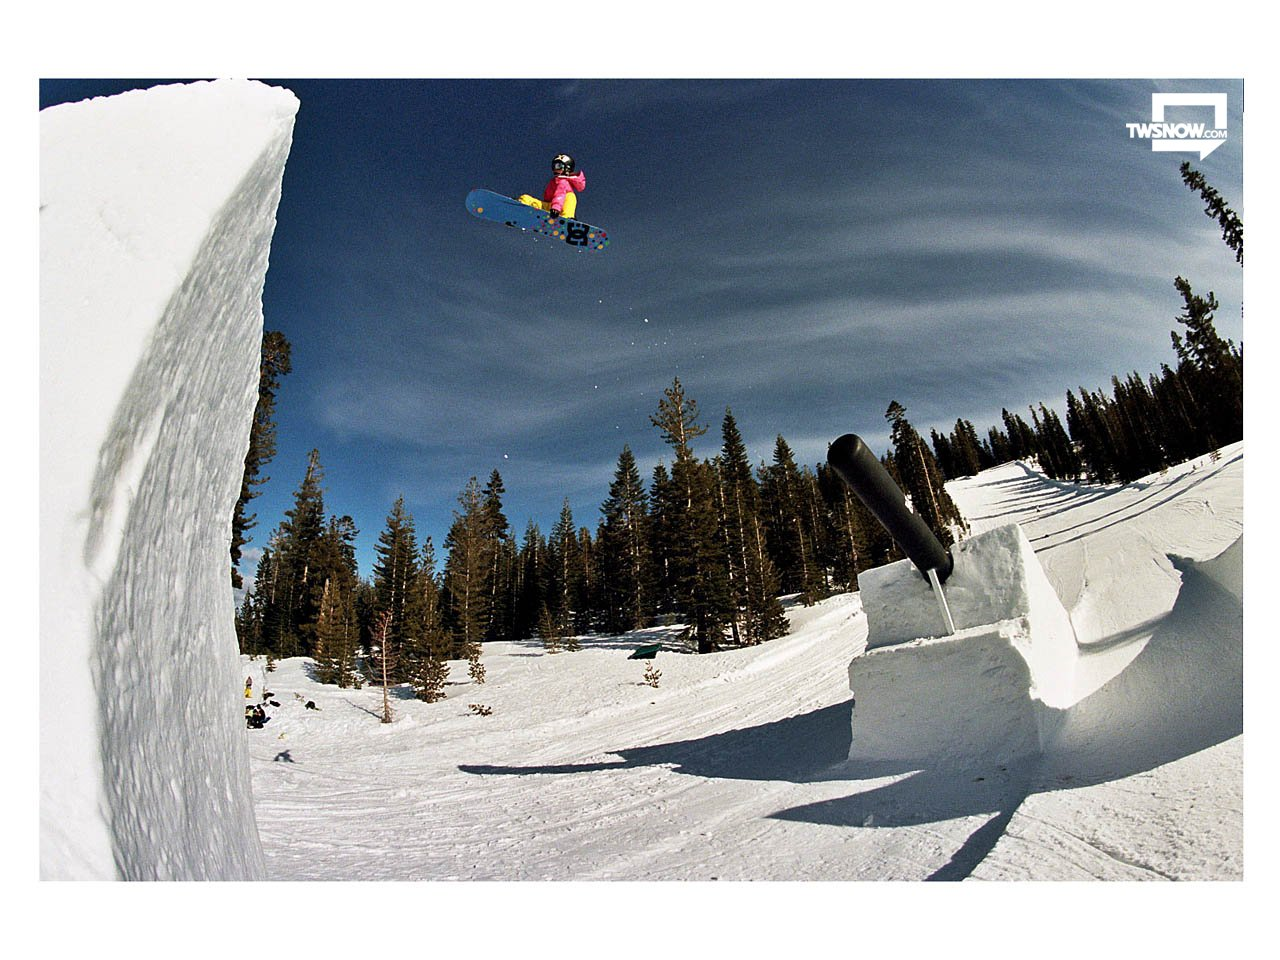 Wednesday Wallpaper Transworld Snowboarding 1280x960